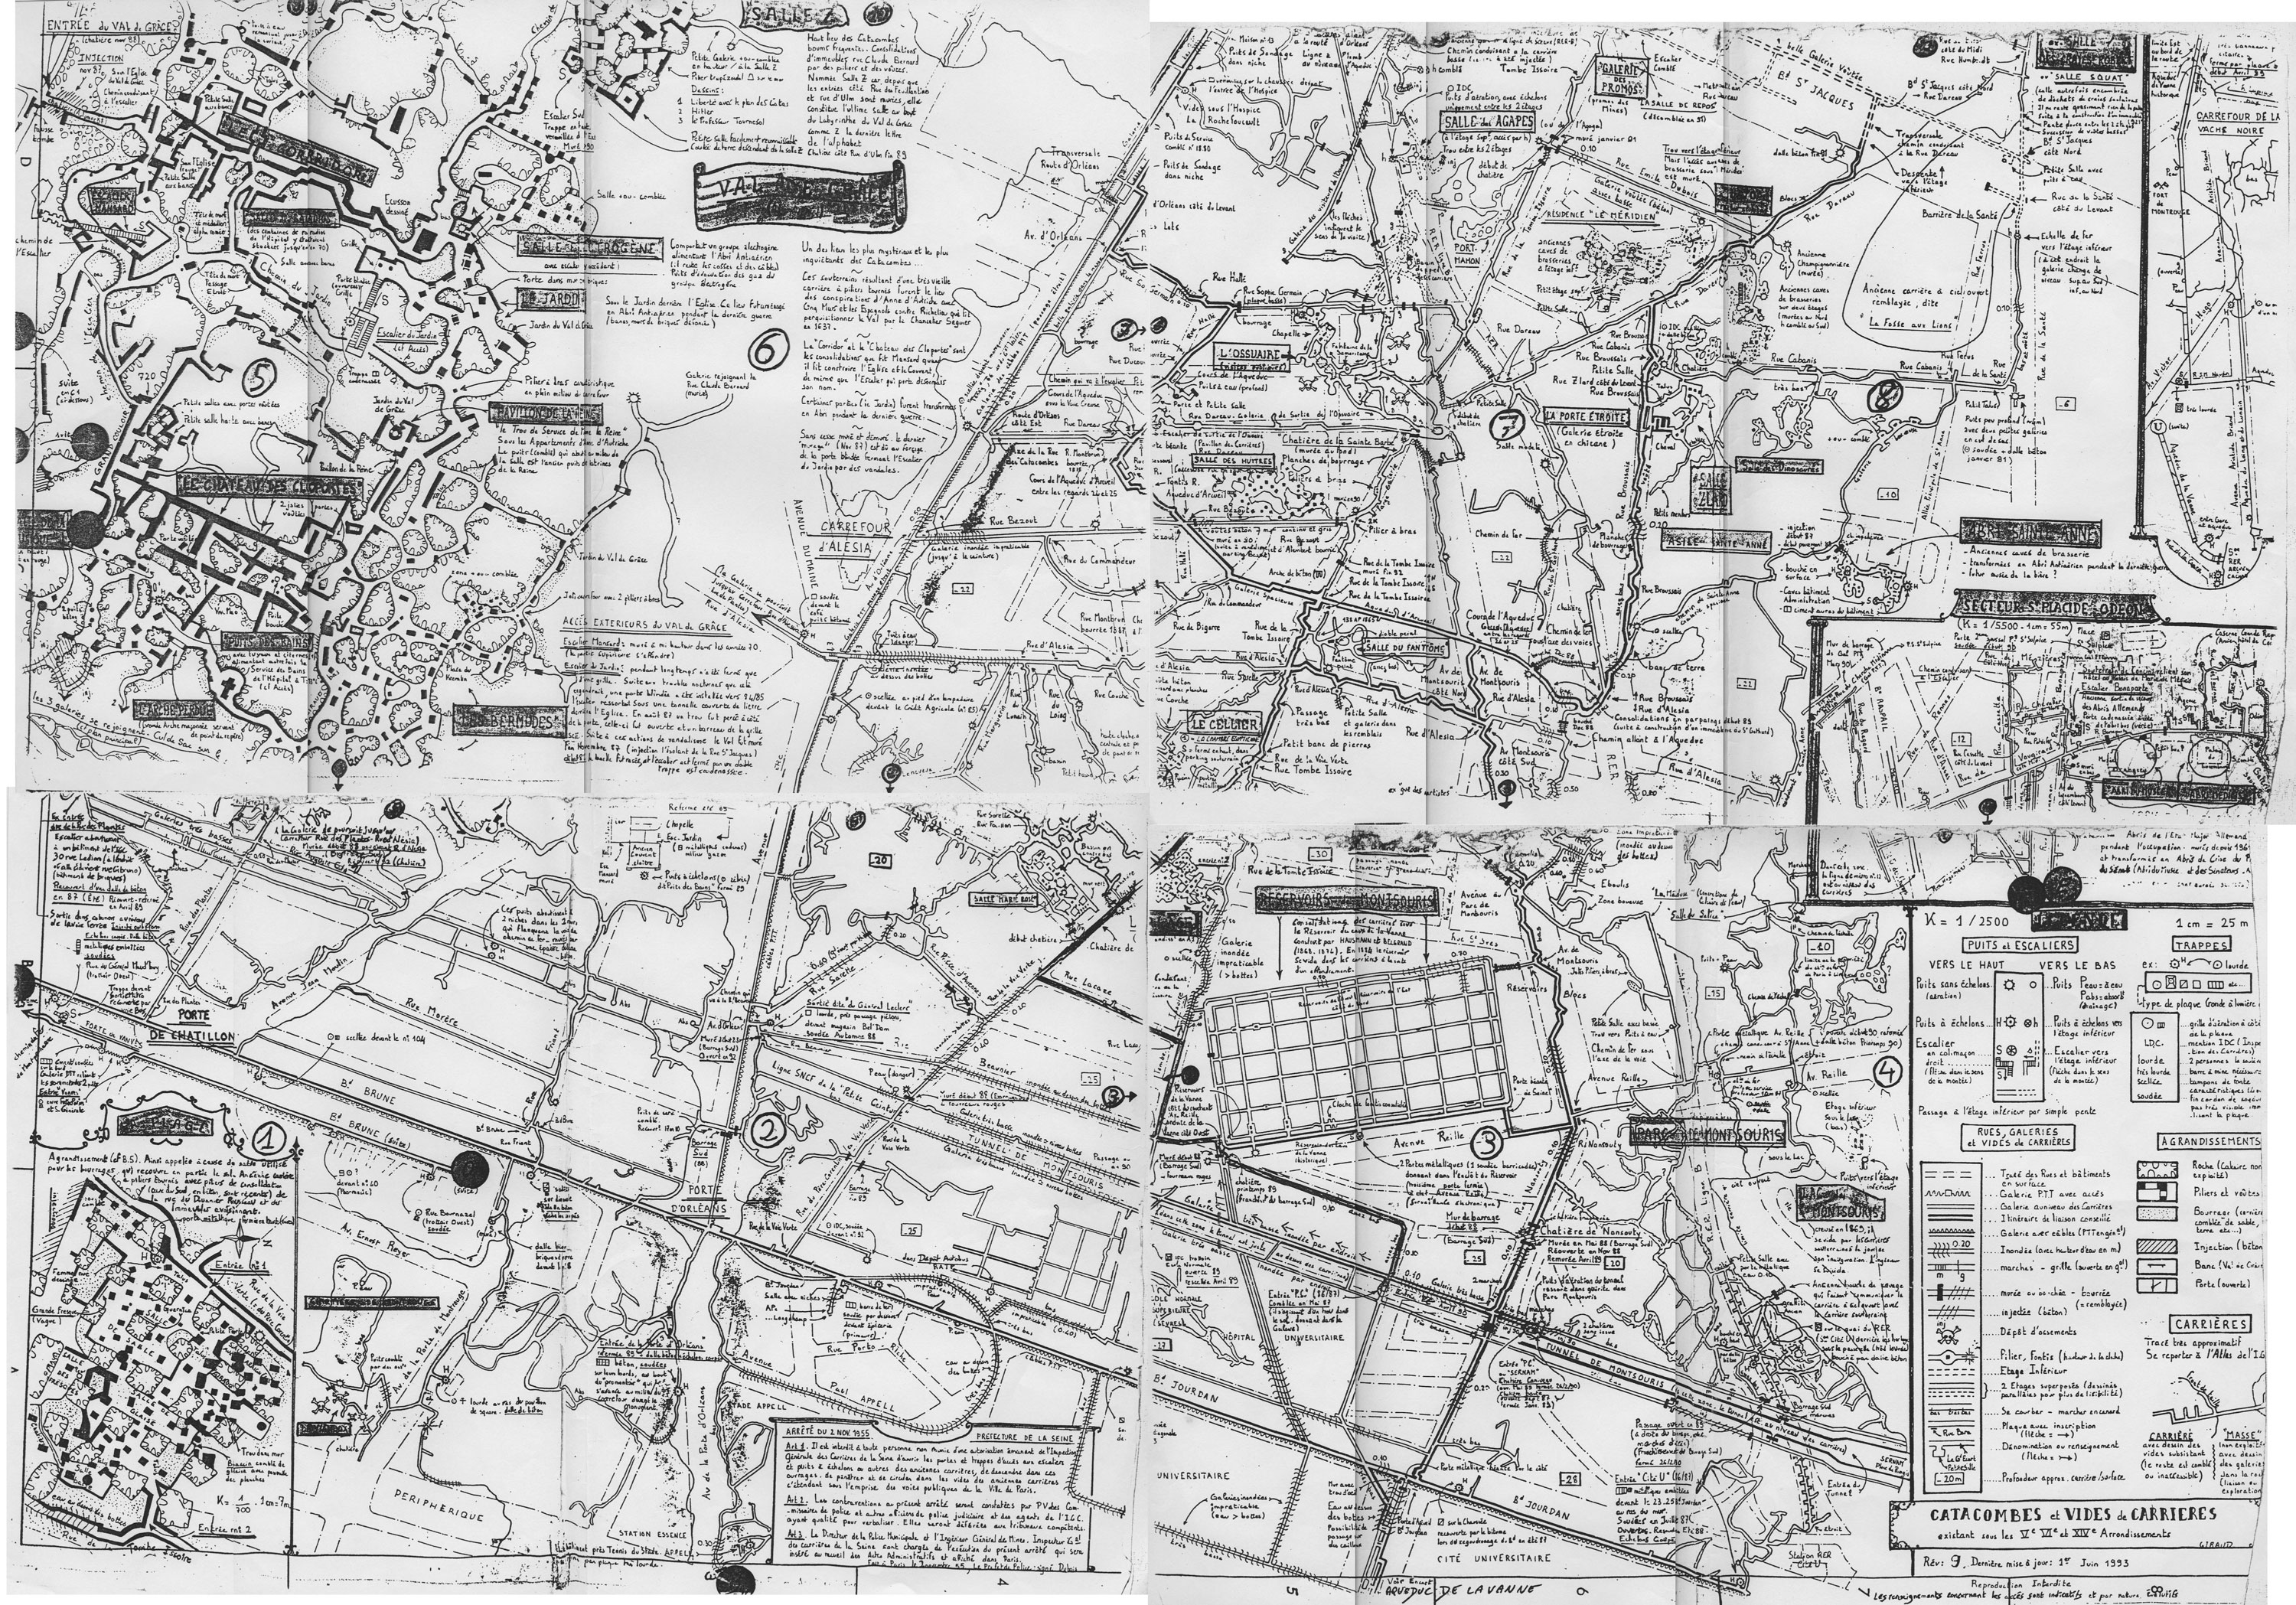 A Hand Drawn Map Of Paris Catacombs 1650x1153 Mapporn